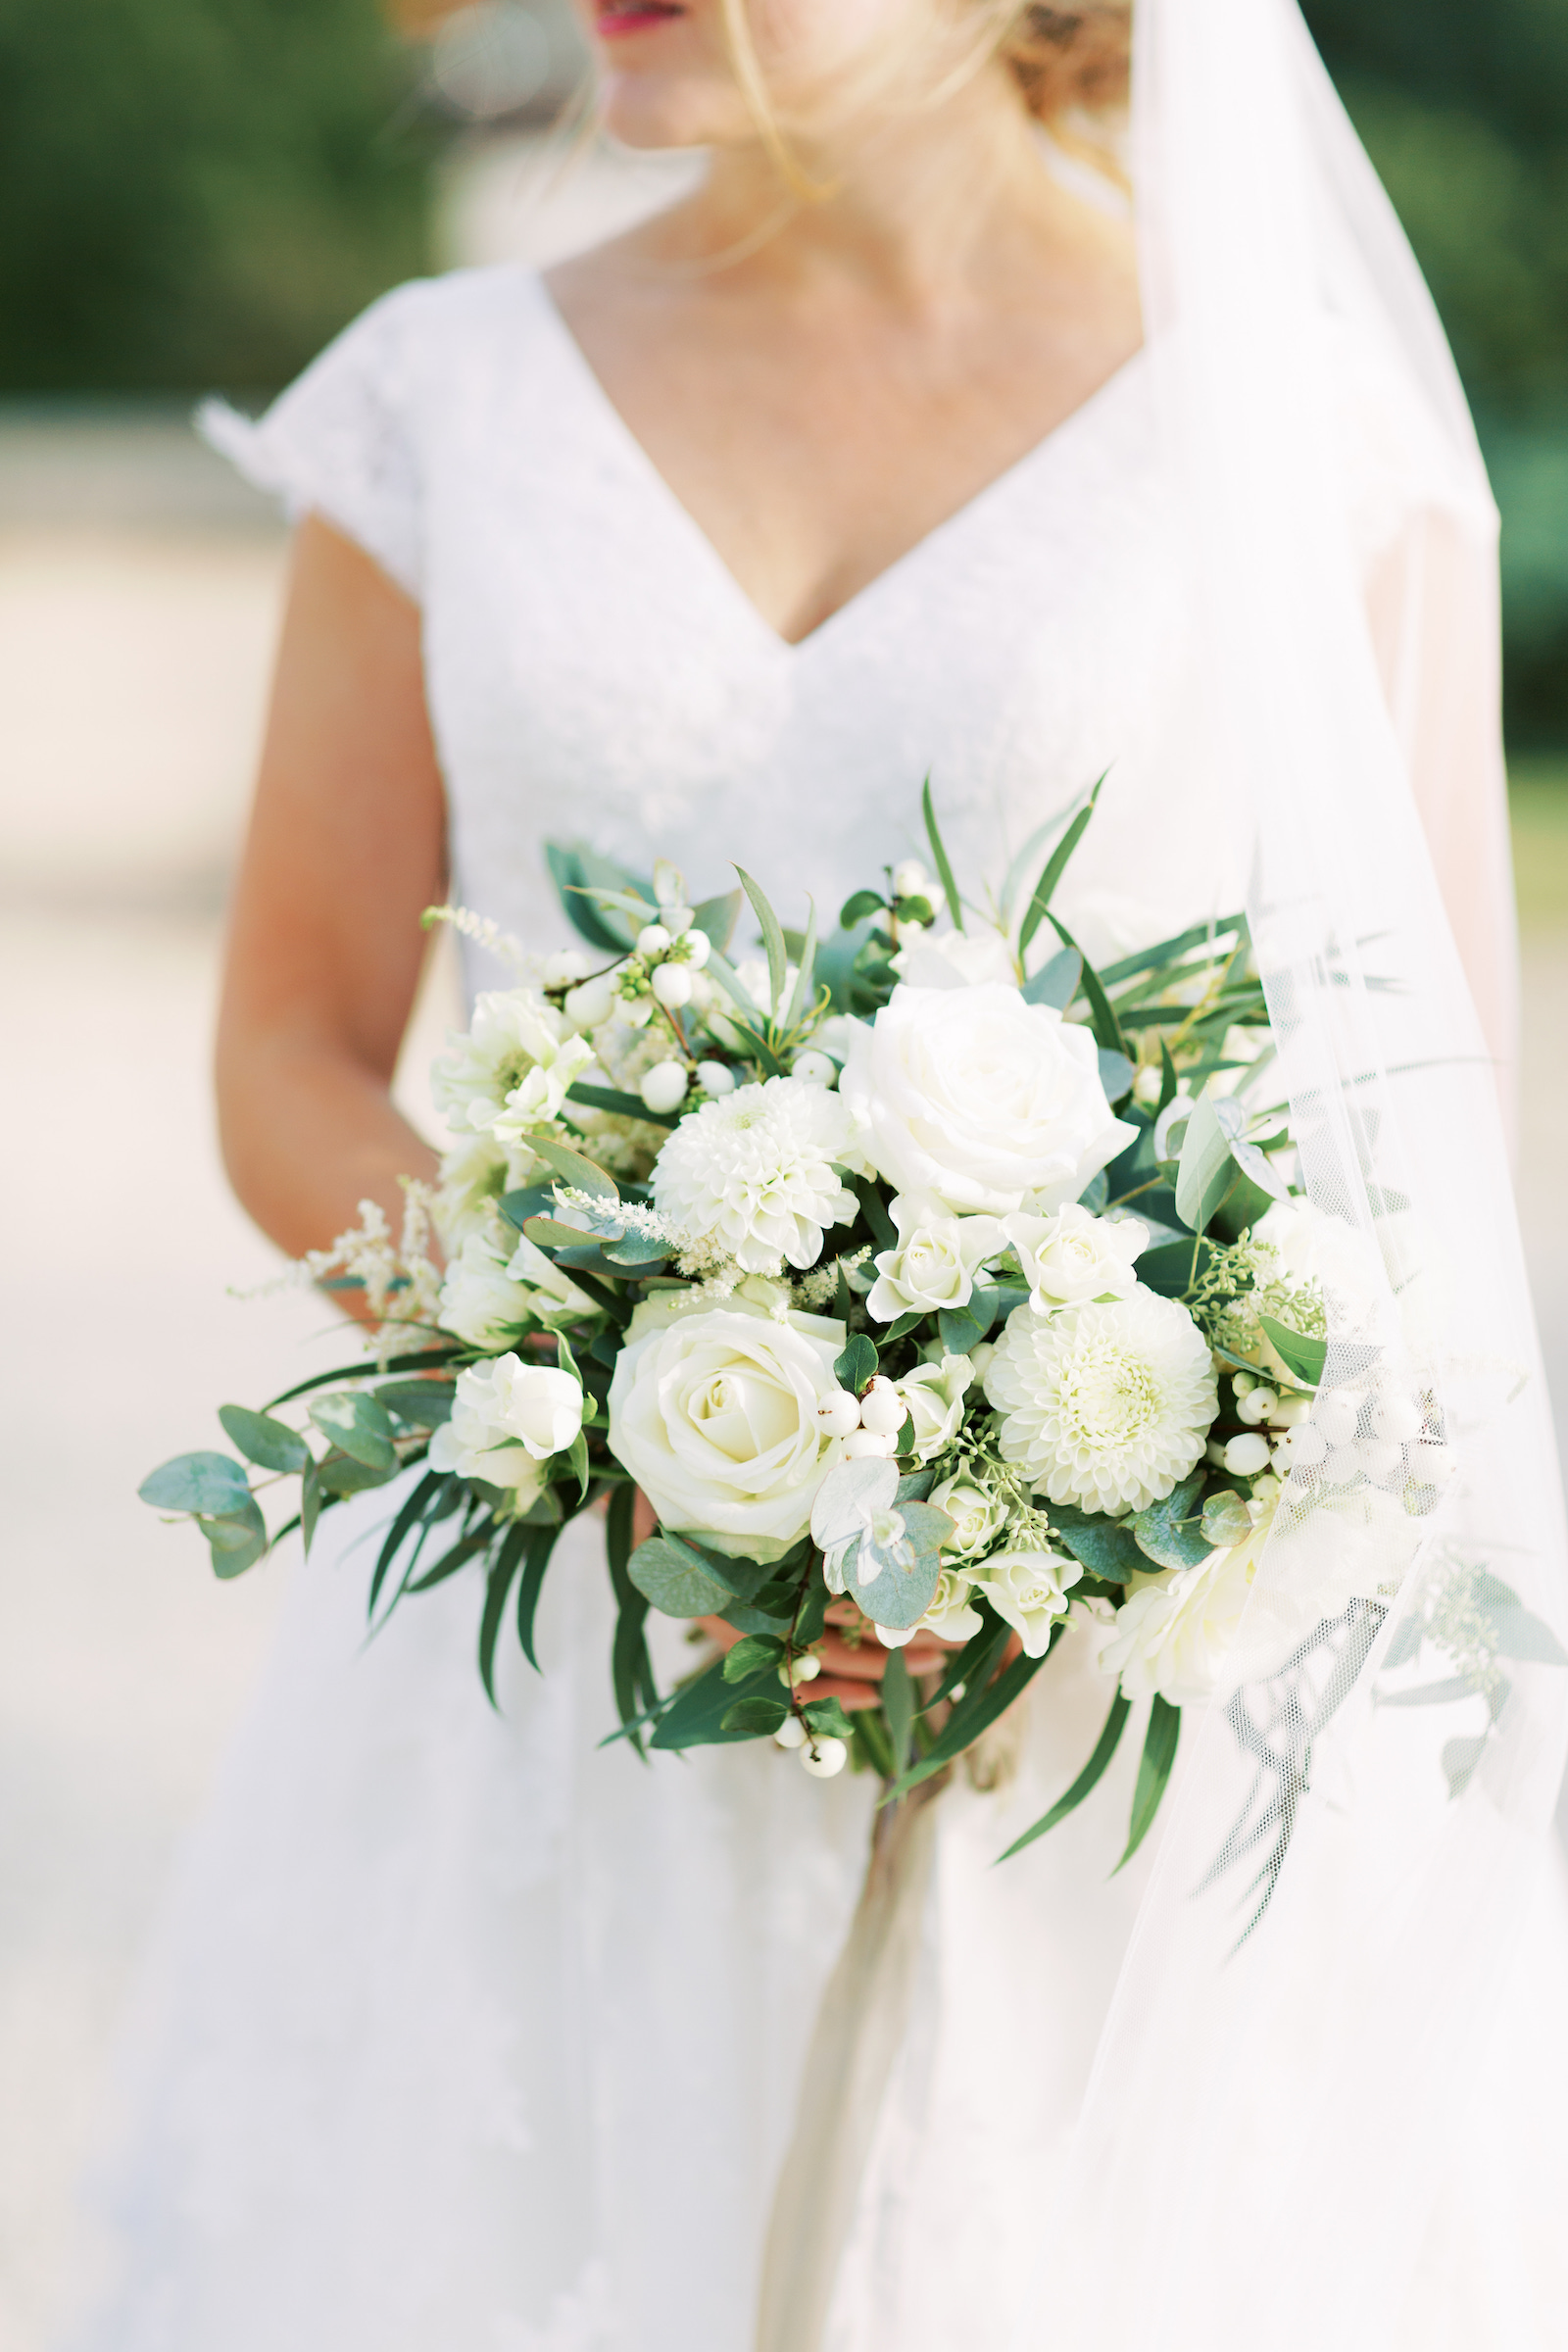 Lily & Sage_Luxury Wedding Planner UK_Sophie & Chris' English Country House Wedding Soft Pale Blue White and Silver Toned Green Neutral Tones Overseas Singapore Pynes House_Andrew & Ada Photography224.jpg